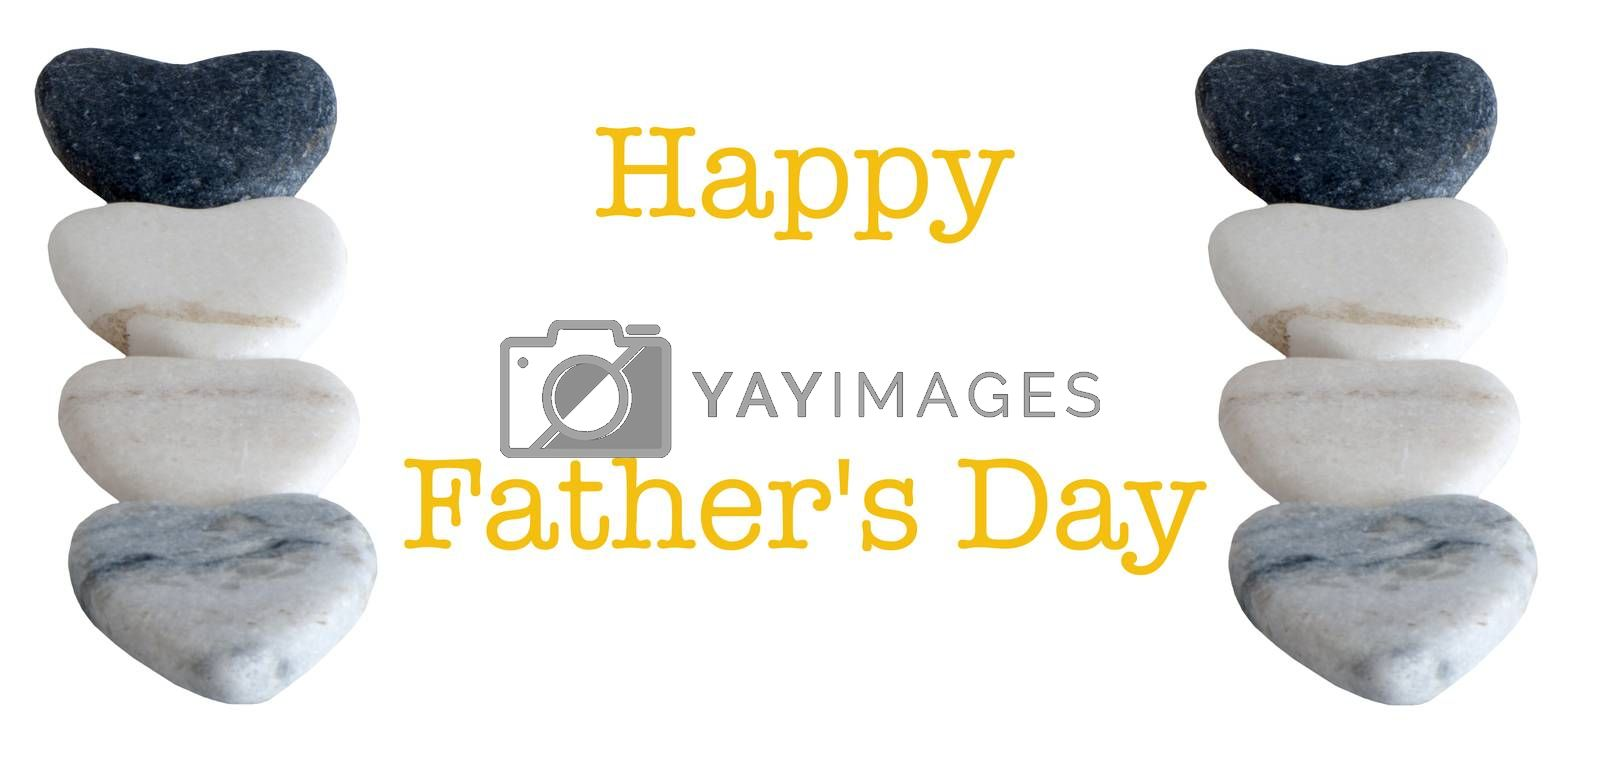 Royalty free image of card for a  Father's Day by carla720